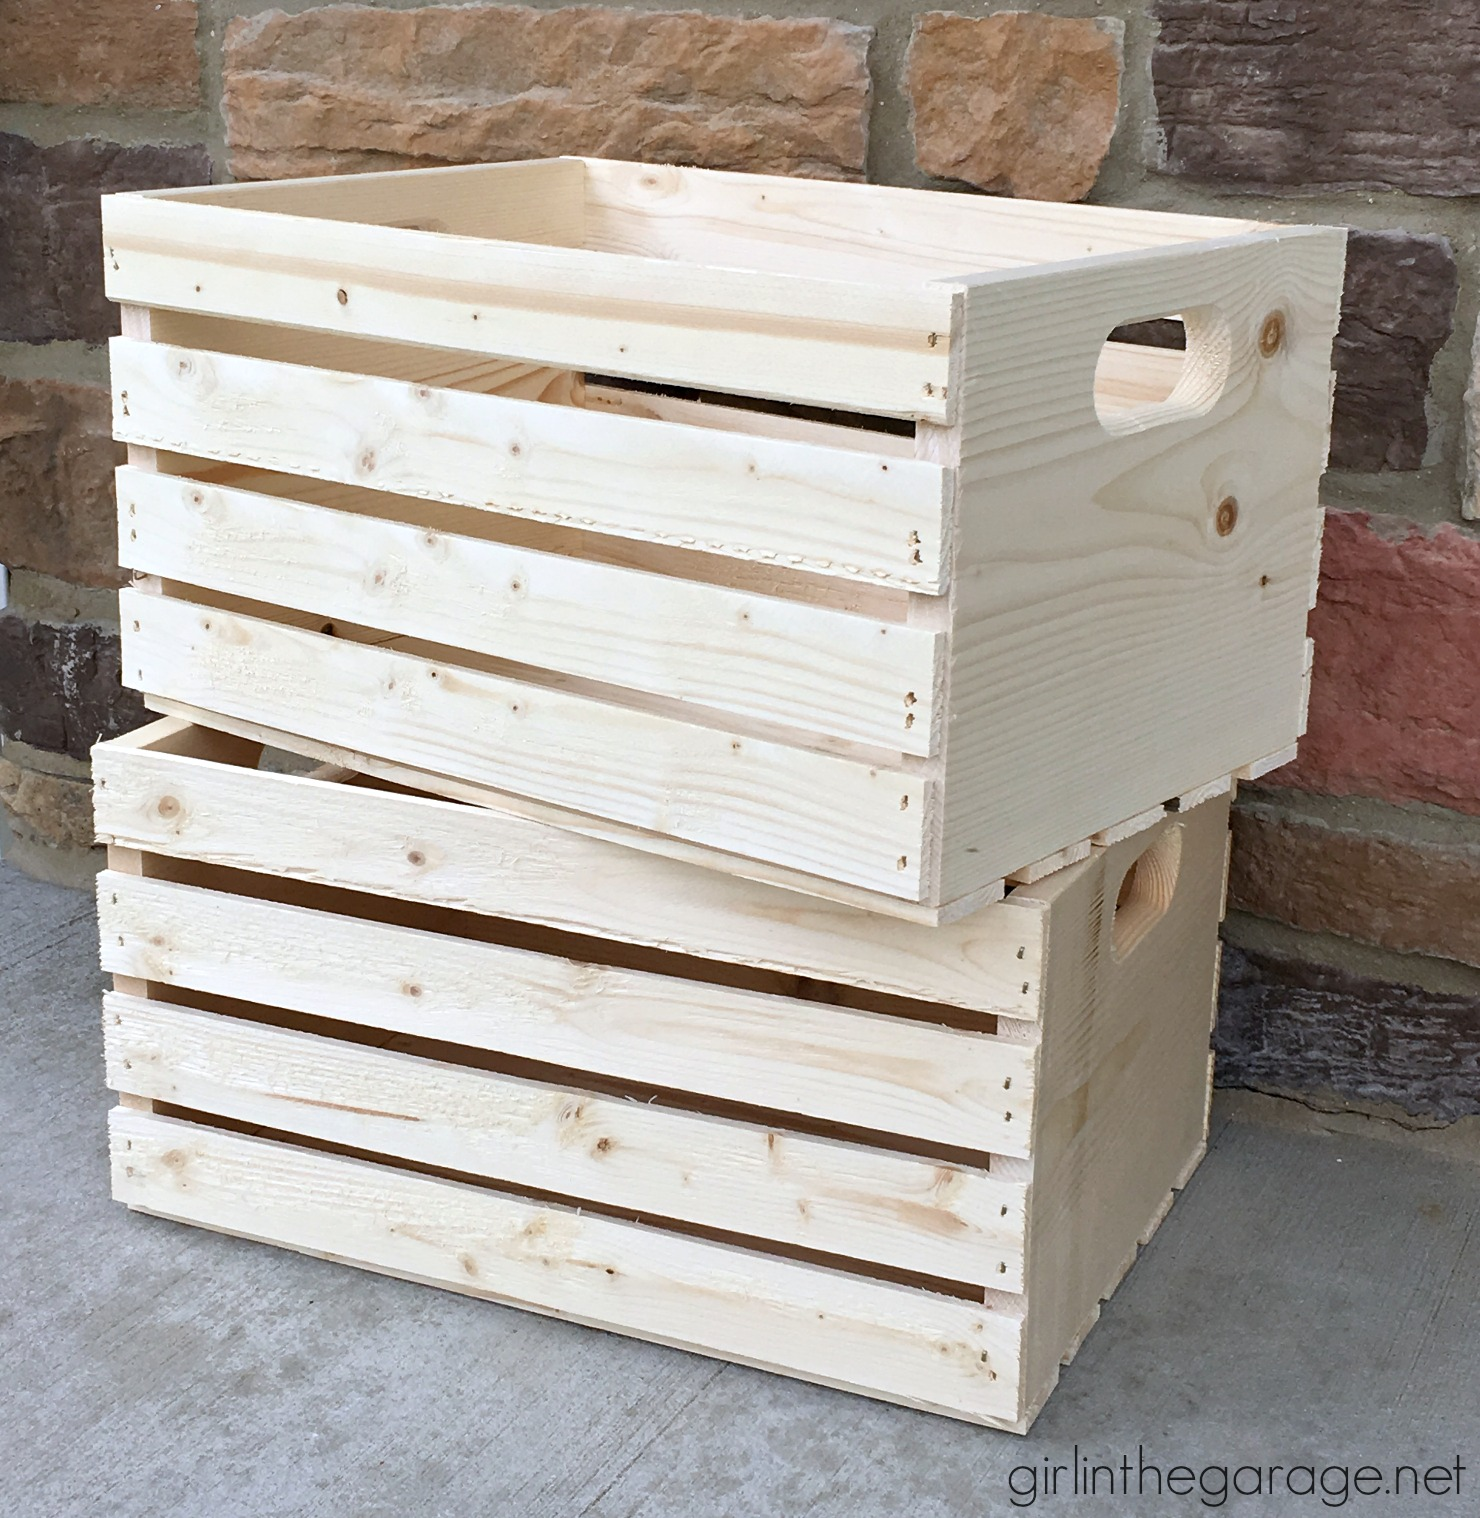 Decoupage crates framed cork boards and drawer shelves for Where do i find wooden crates